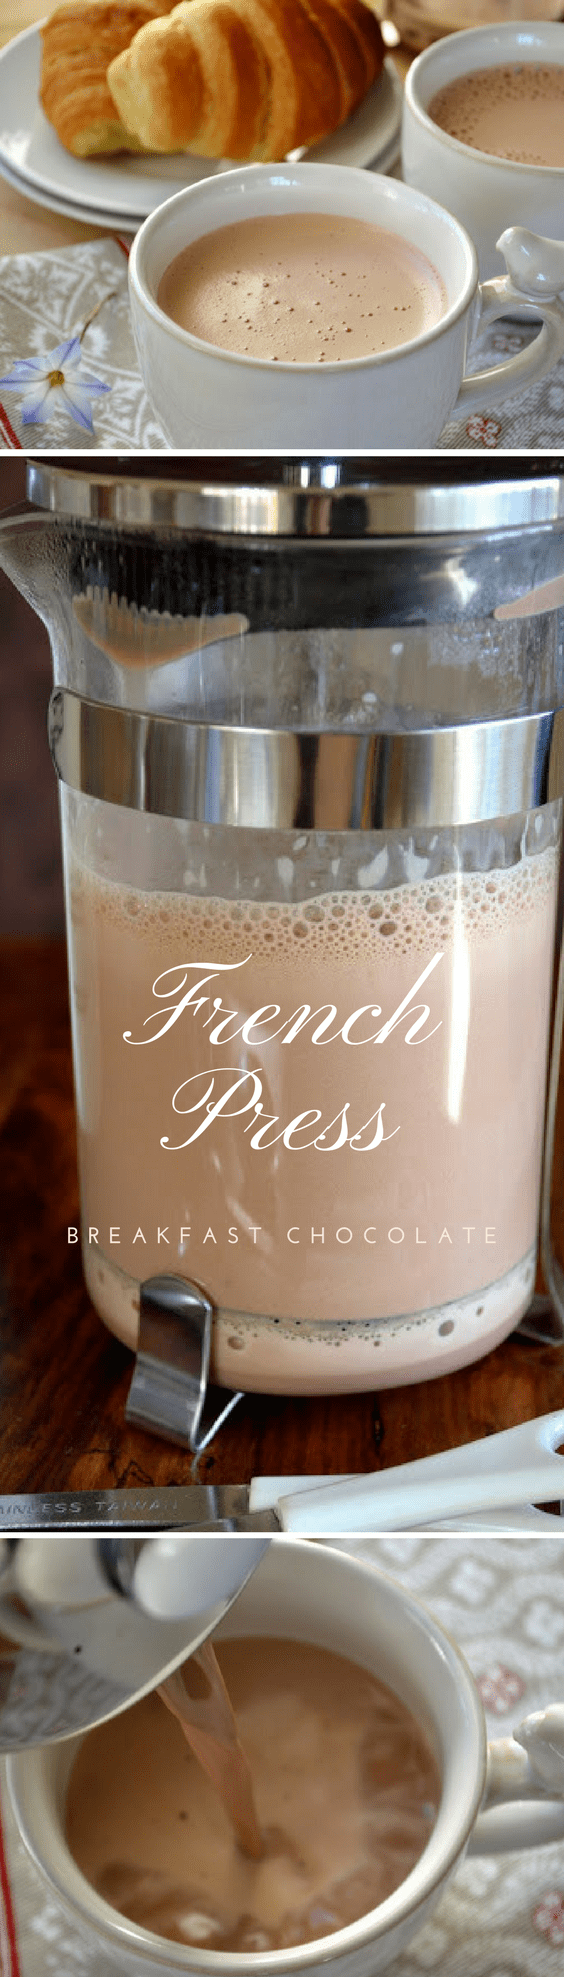 French Press Breakfast Chocolate ~ this easy method makes a thick, rich, frothed hot chocolate just like the Europeans enjoy! #hotcocoa #hotchocolate #chocolate #drinkingchocolate #breakfastchocolate #Frenchpress #breakfast #beverage #fallbeverage #winterbeverage